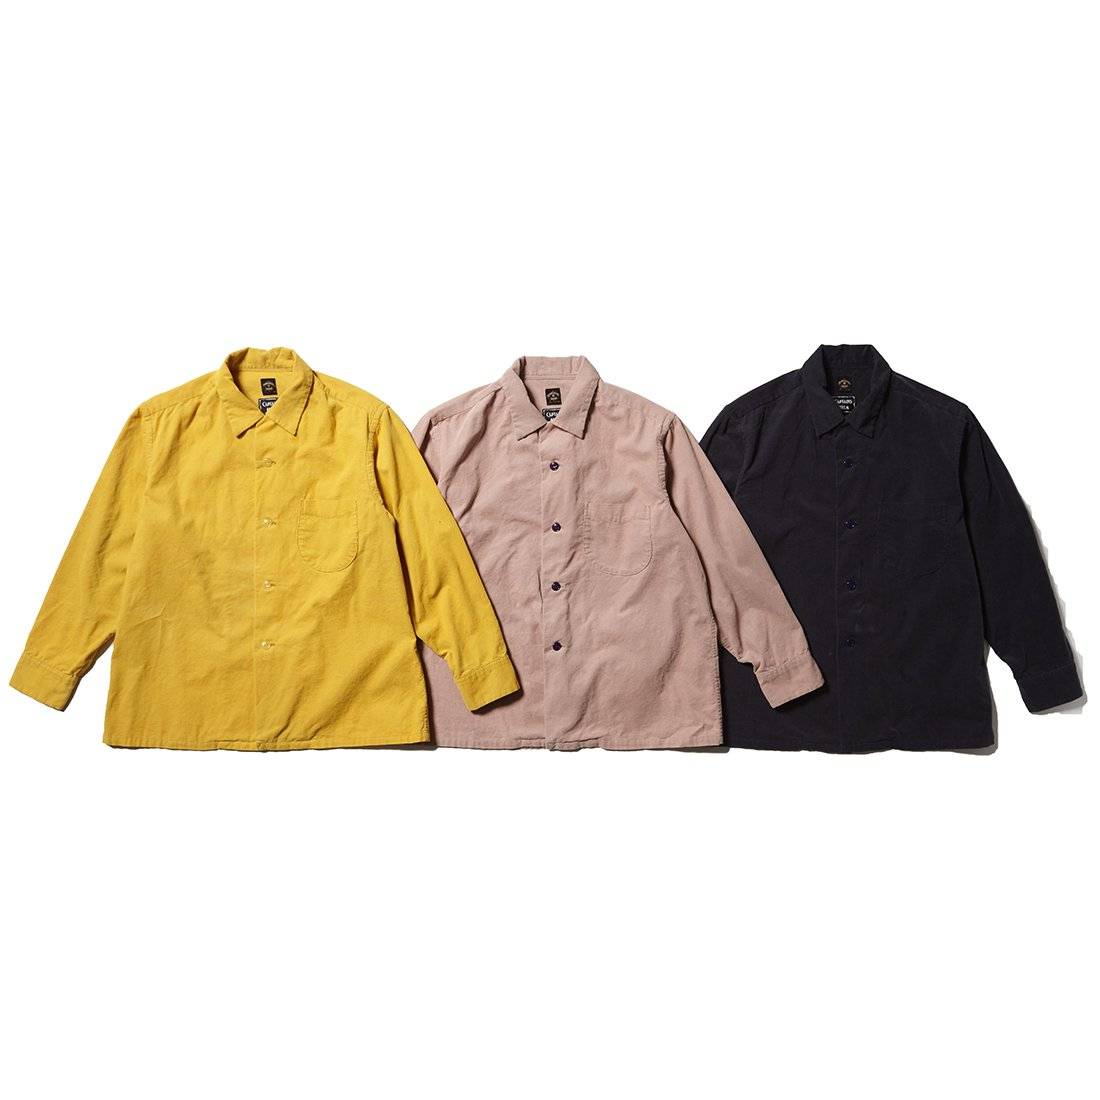 TOWN CRAFT x CAPTAINS HELM    #CORDUROY SHIRT